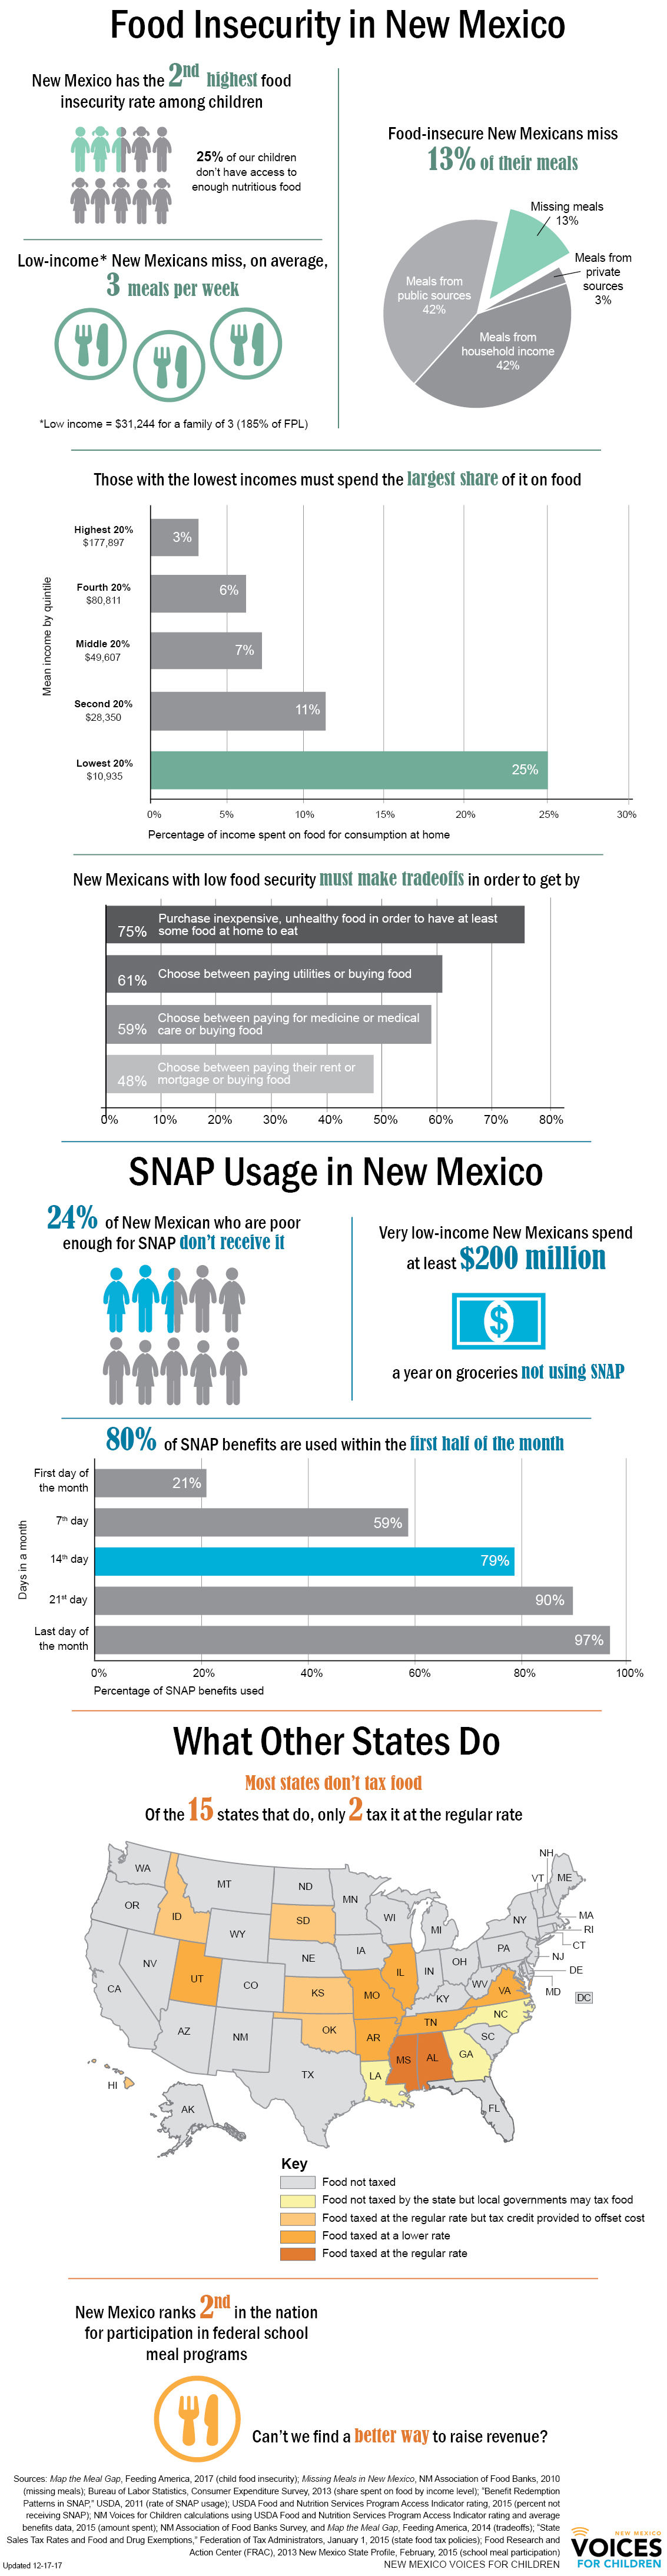 food insecurity in new mexico